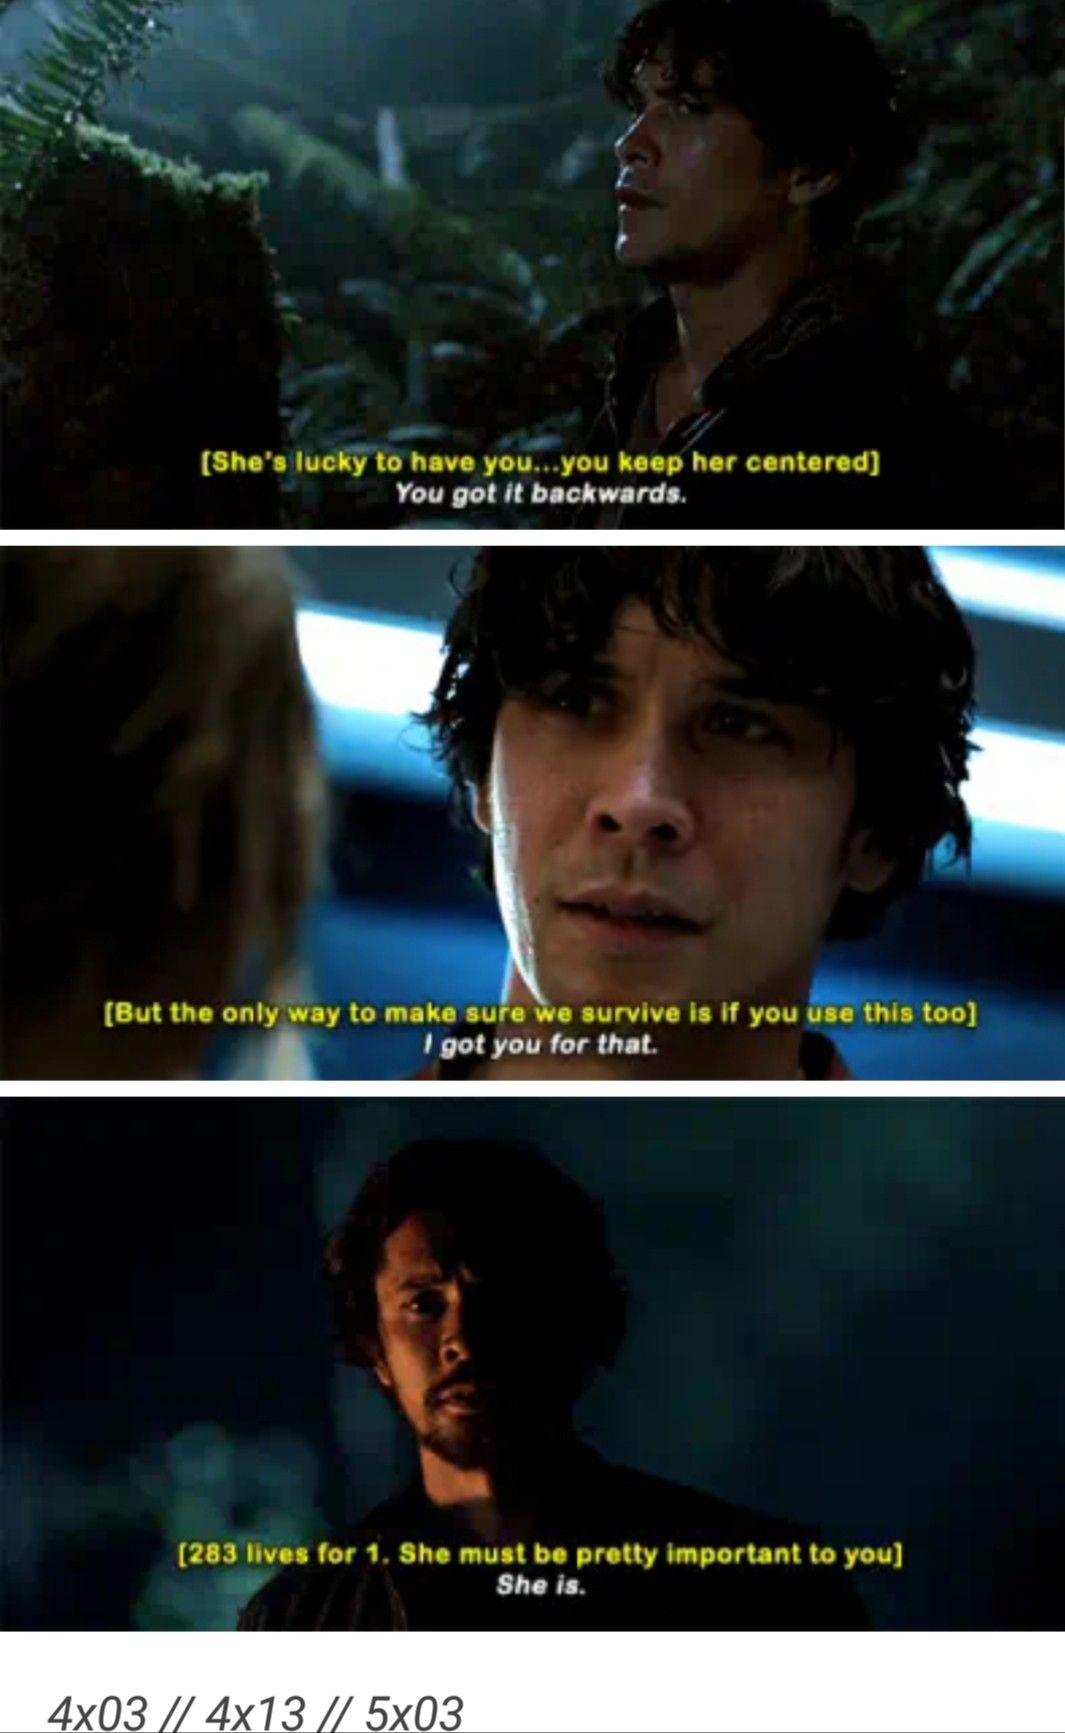 Pin By Morgan On Tv Shows The 100 Bellarke The Cw